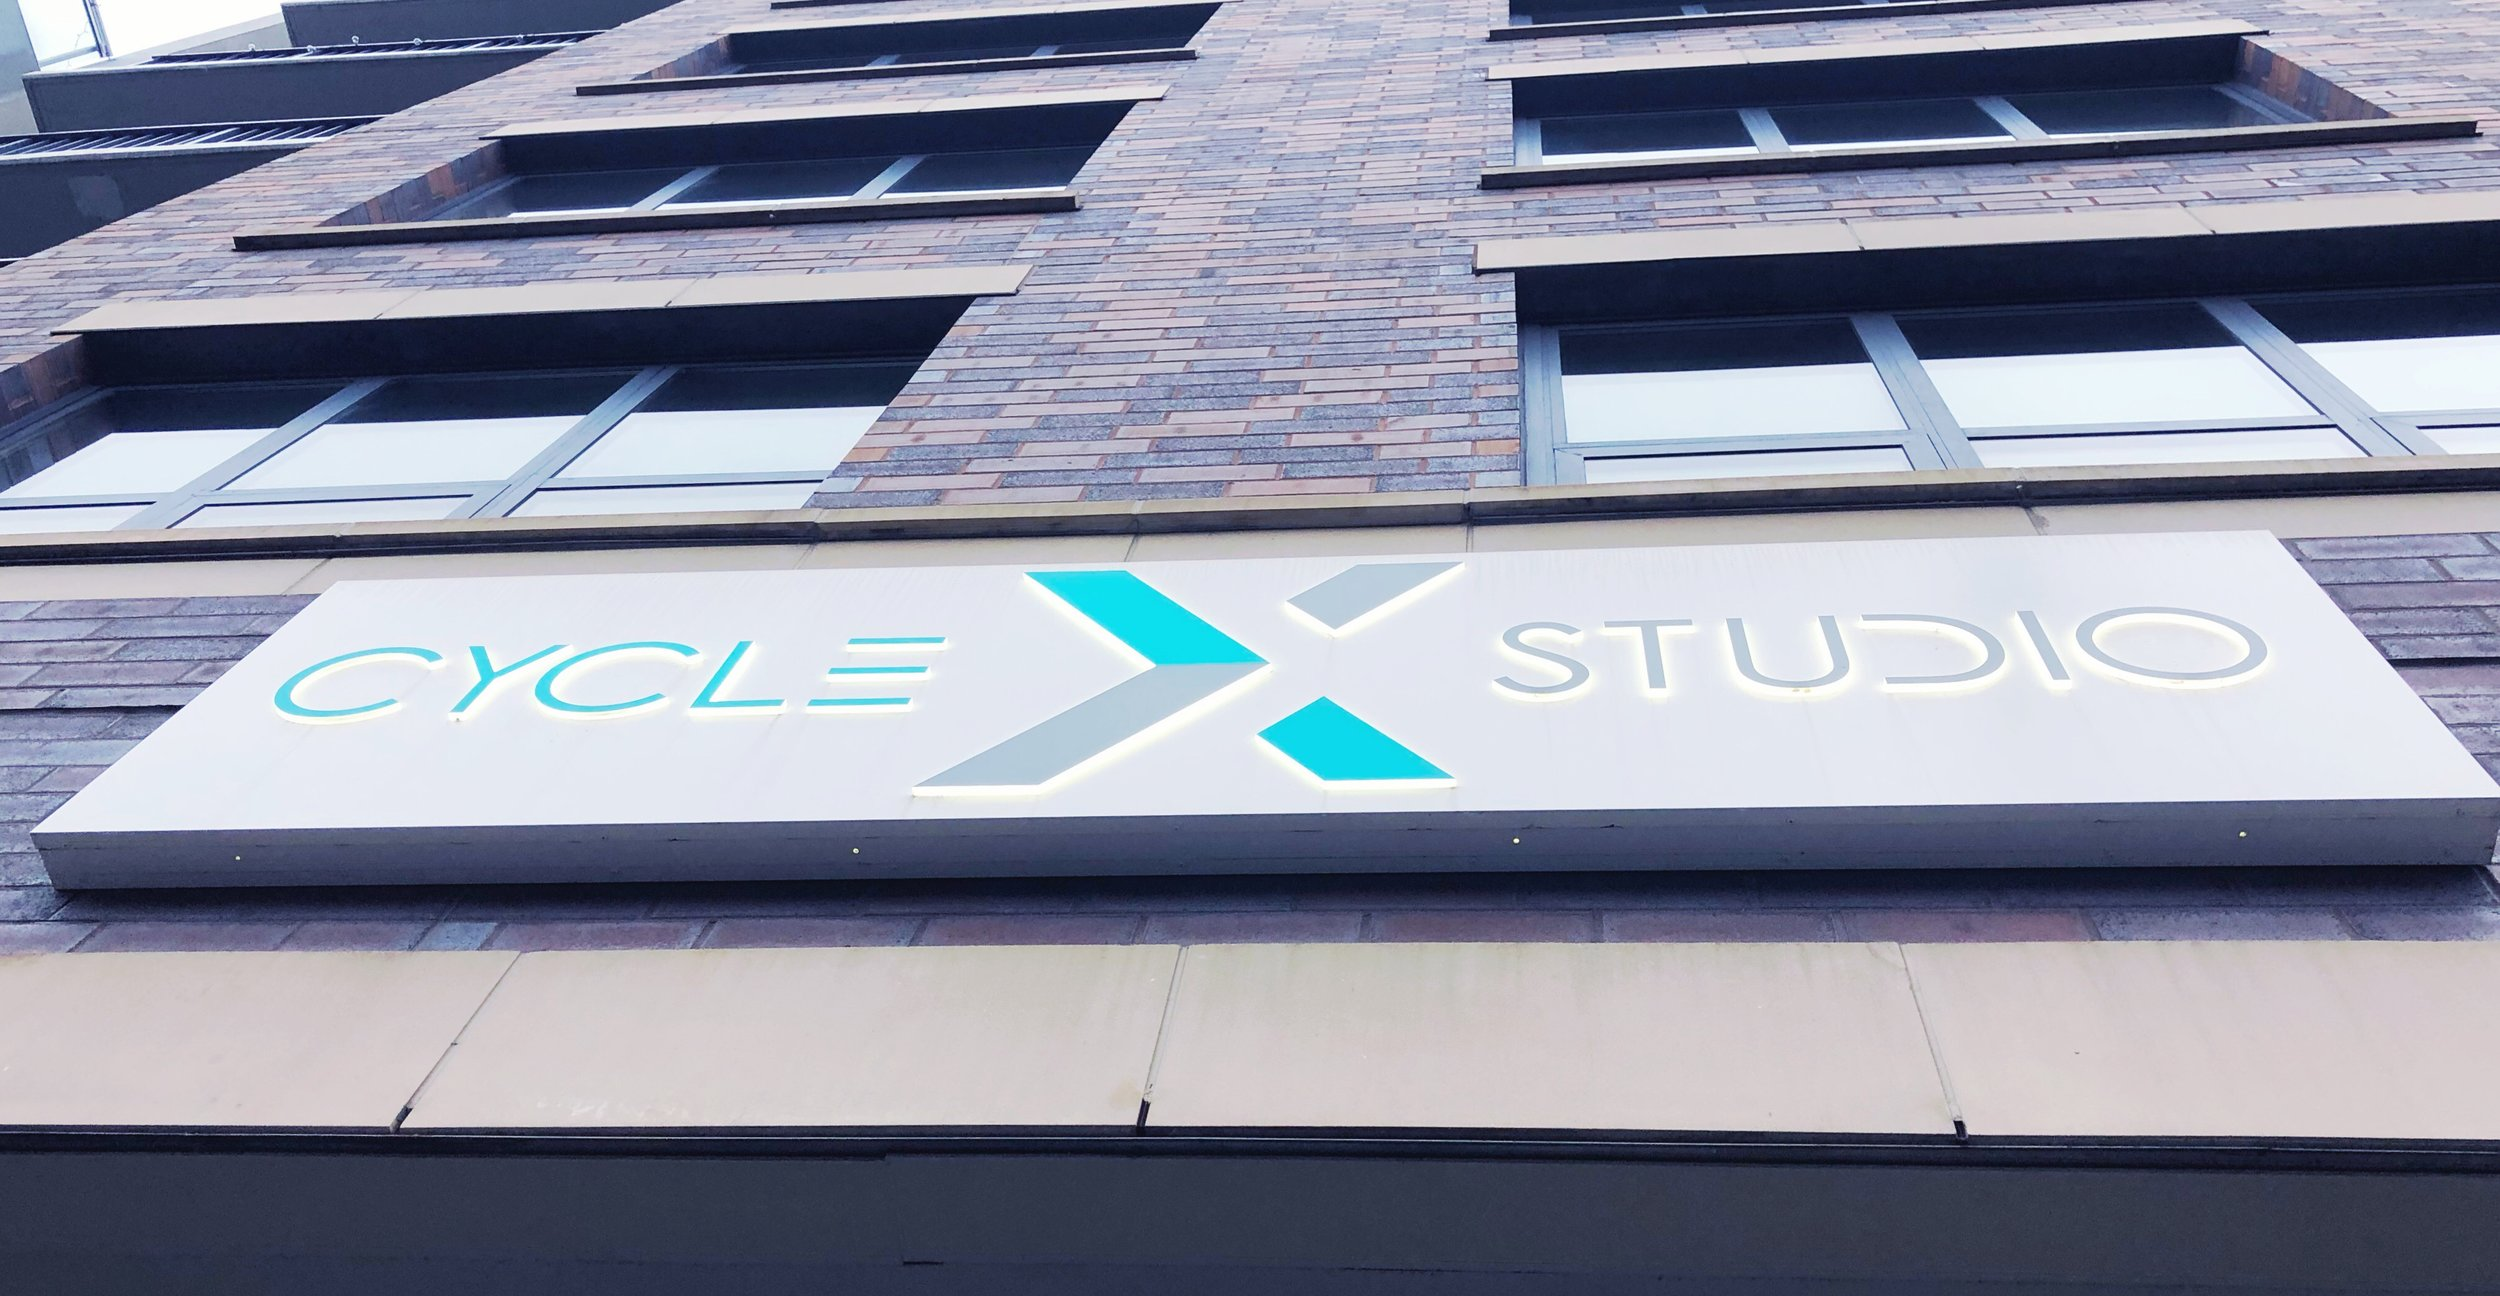 Cycle X cycling studio in West loop, Chicago.